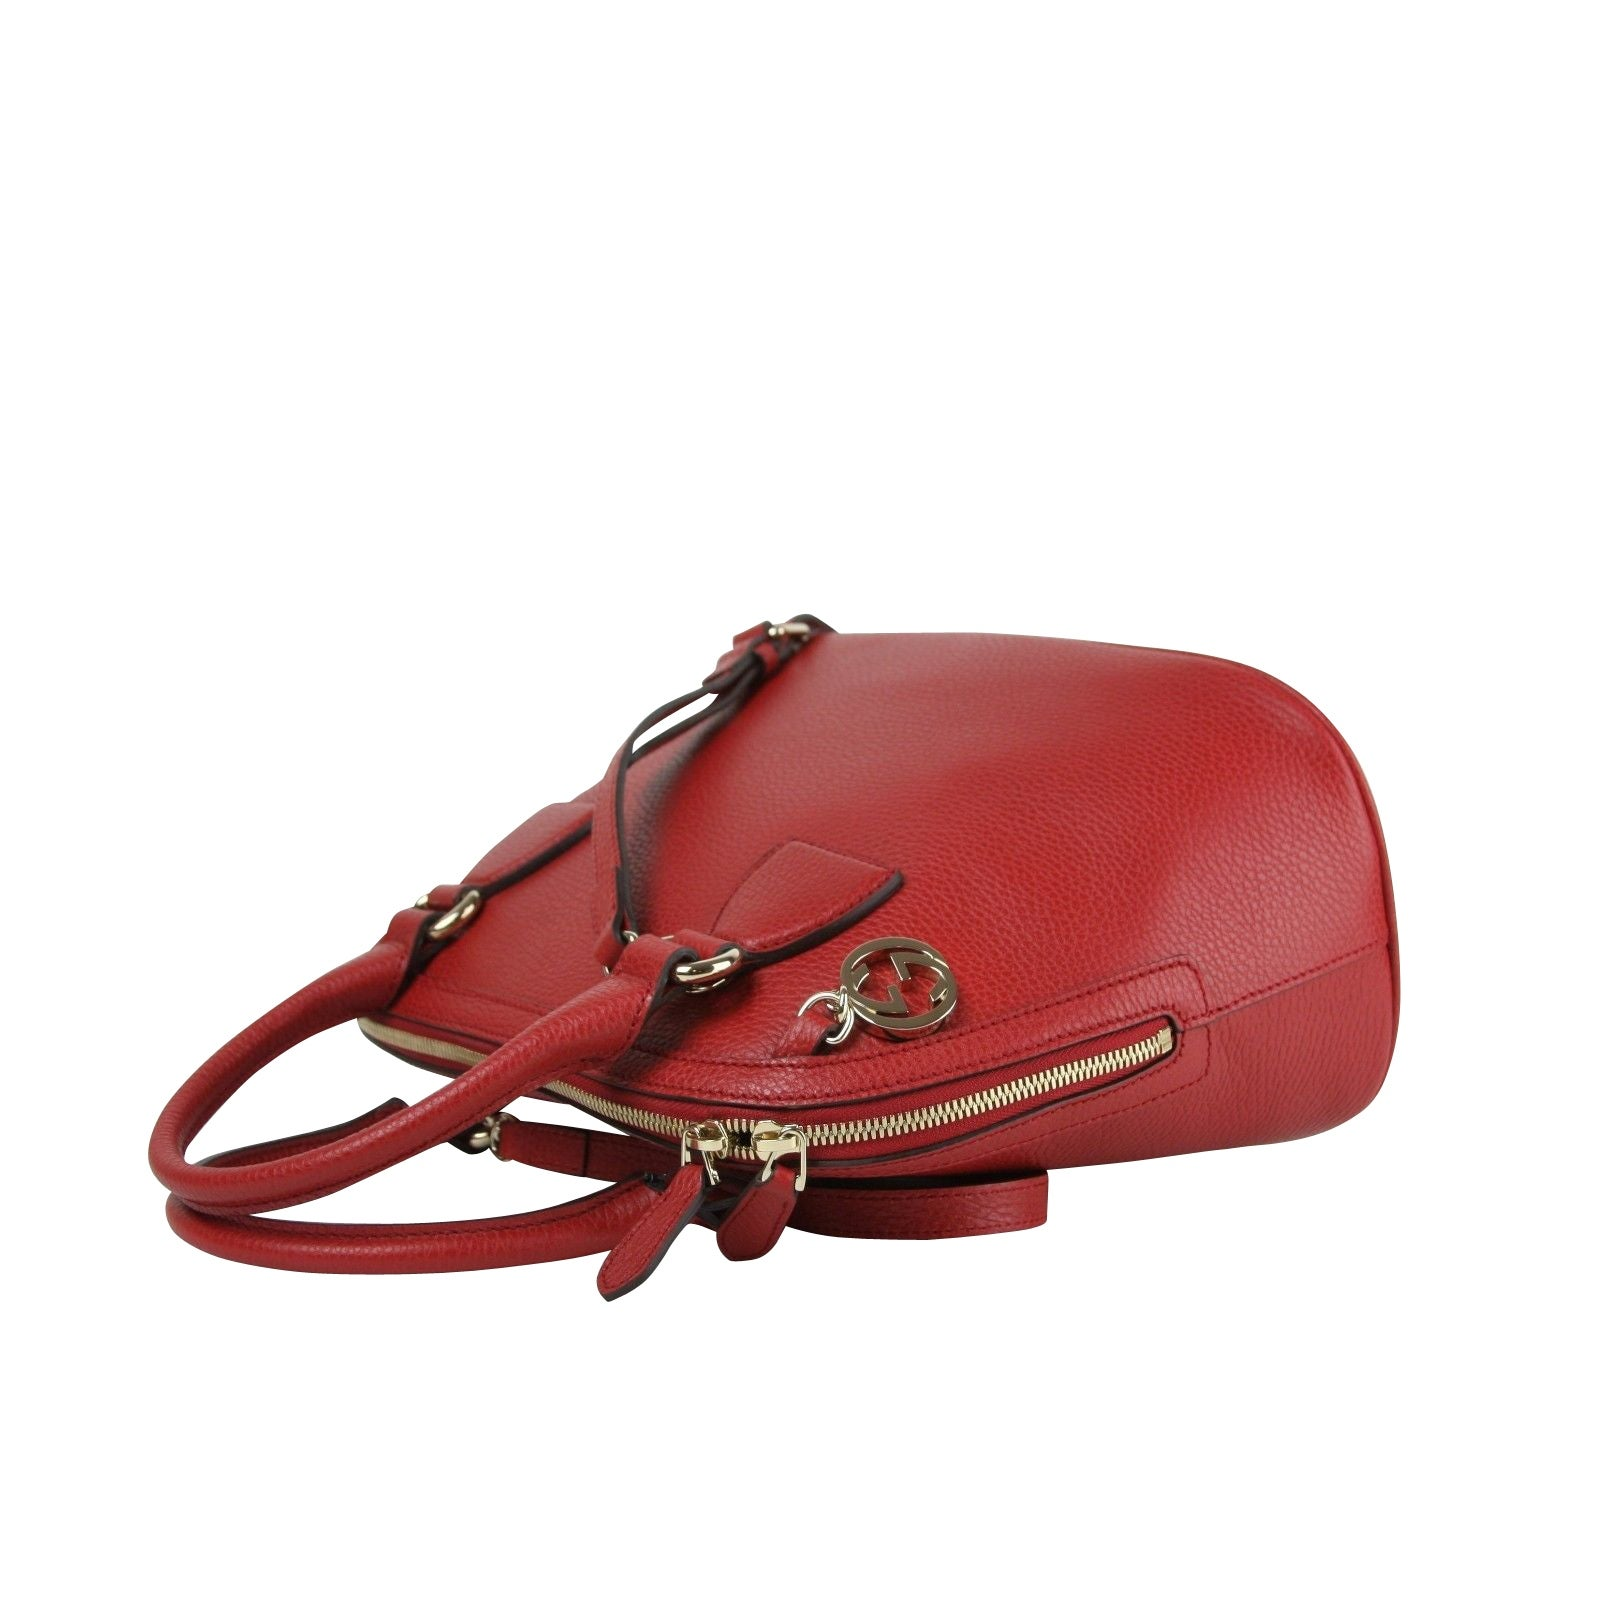 26f59e2063a2 Shop Gucci GG Charm Red Leather Medium Convertible Dome Bag 449662 6420 -  Free Shipping Today - Overstock - 27603211